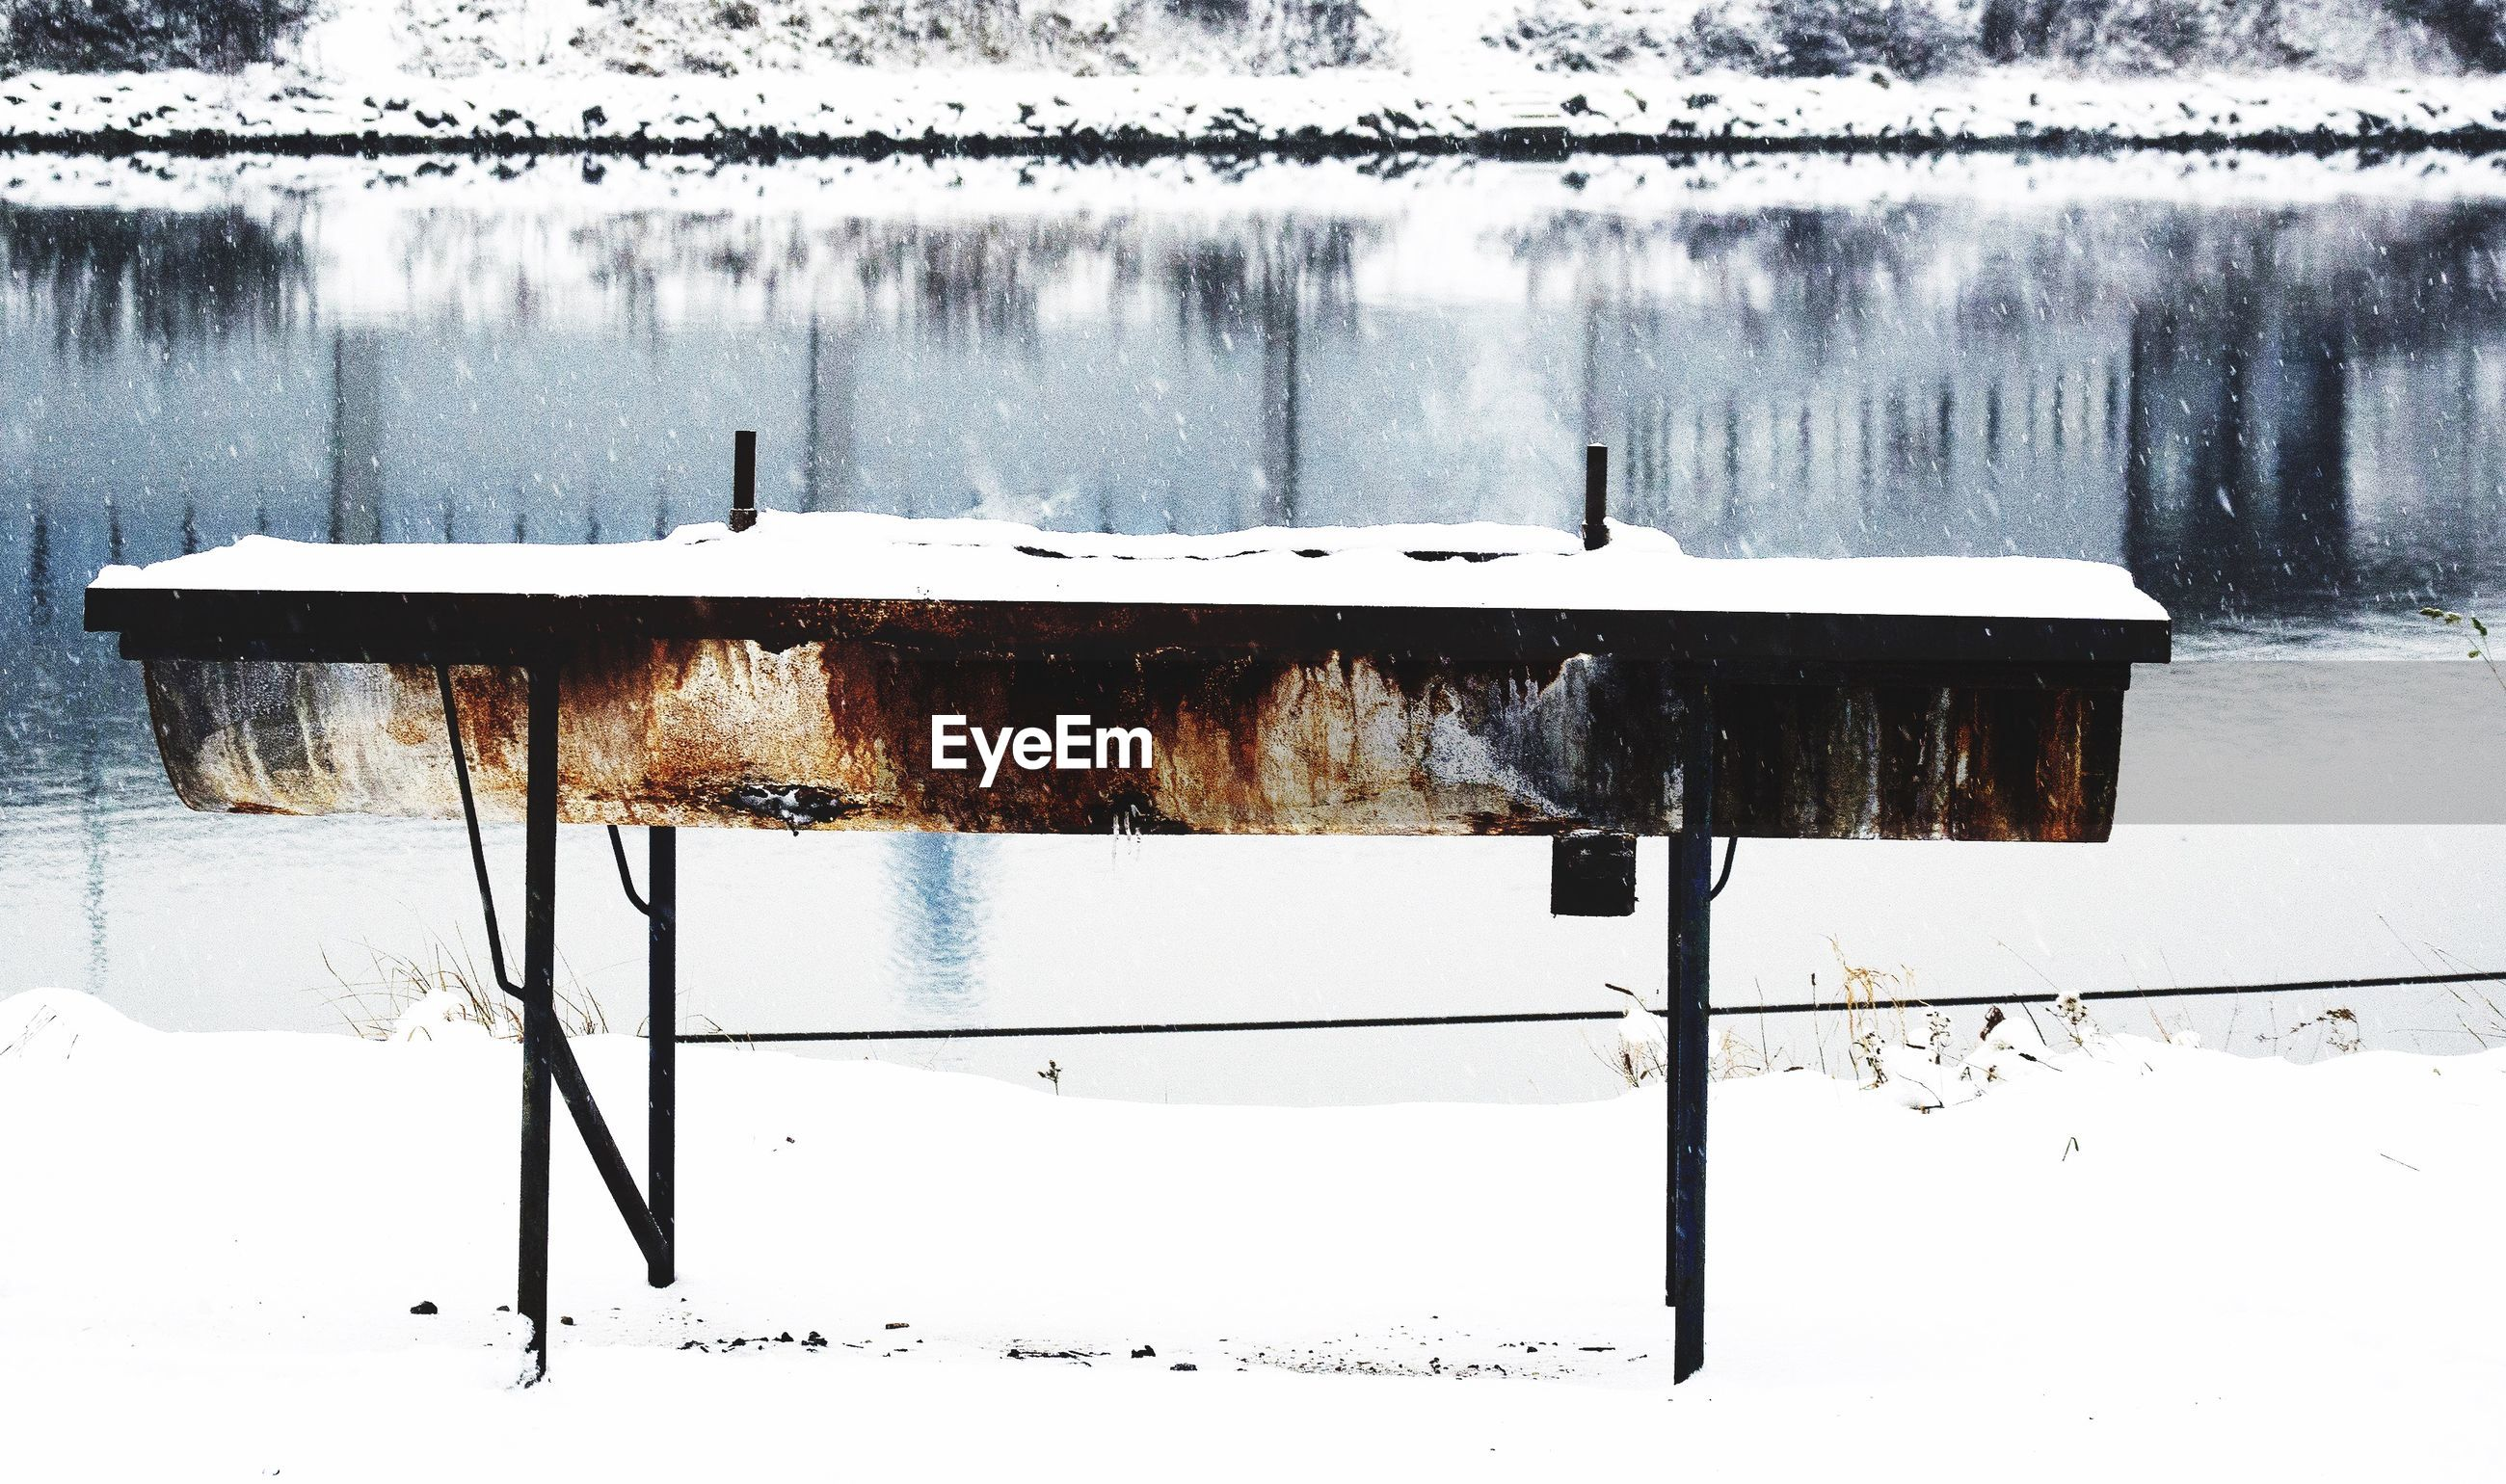 winter, snow, cold temperature, lake, season, tranquility, water, white color, nature, weather, frozen, reflection, tranquil scene, bench, wood - material, chair, covering, no people, day, fence